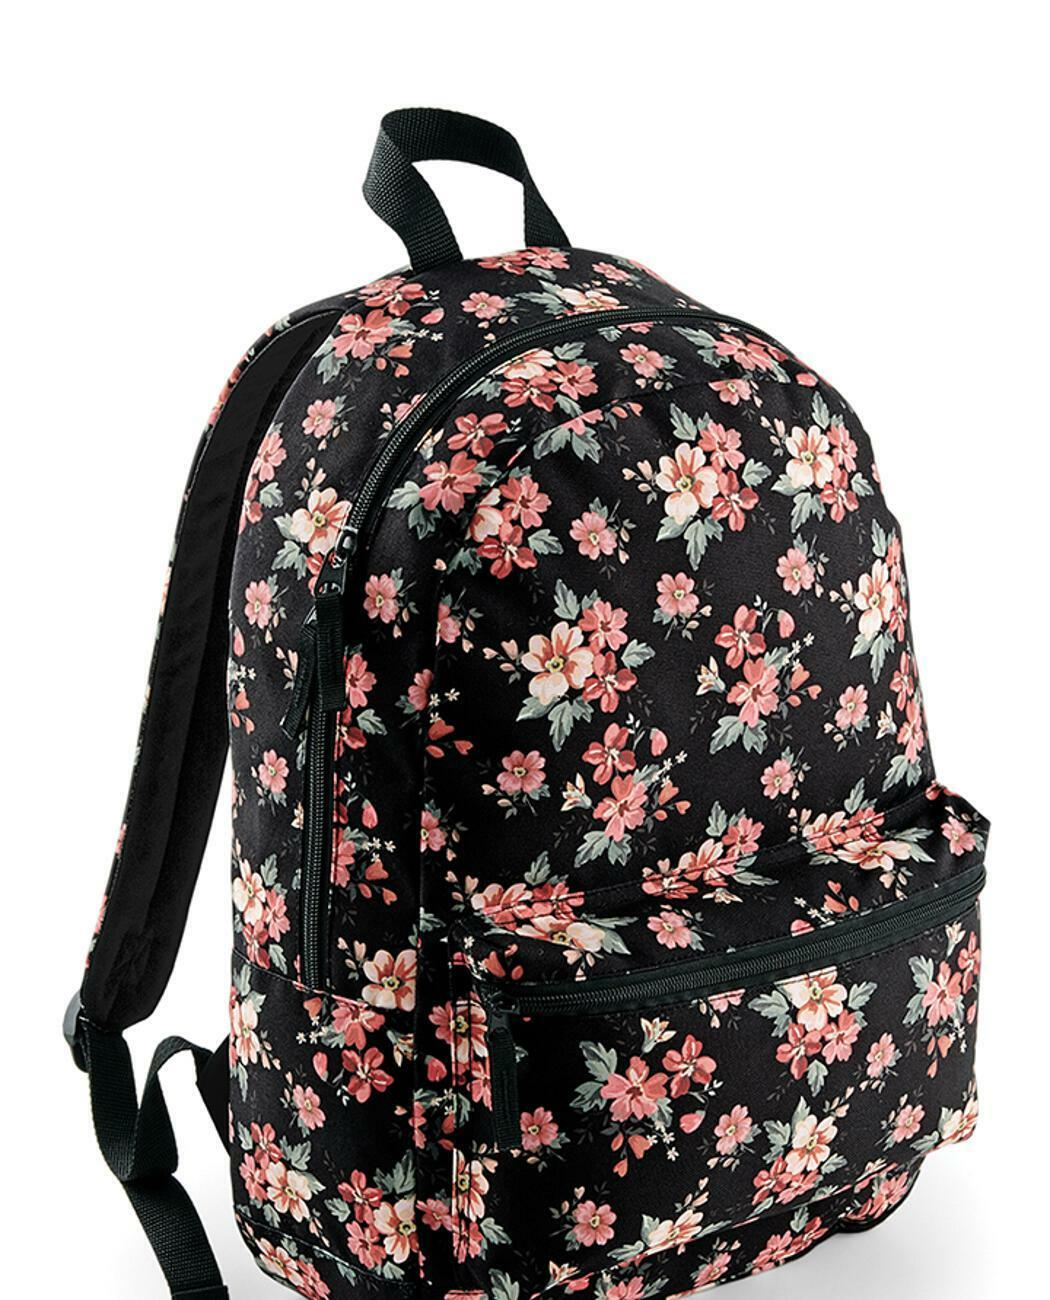 damen frauen tasche rucksack uni schule blumen flower. Black Bedroom Furniture Sets. Home Design Ideas